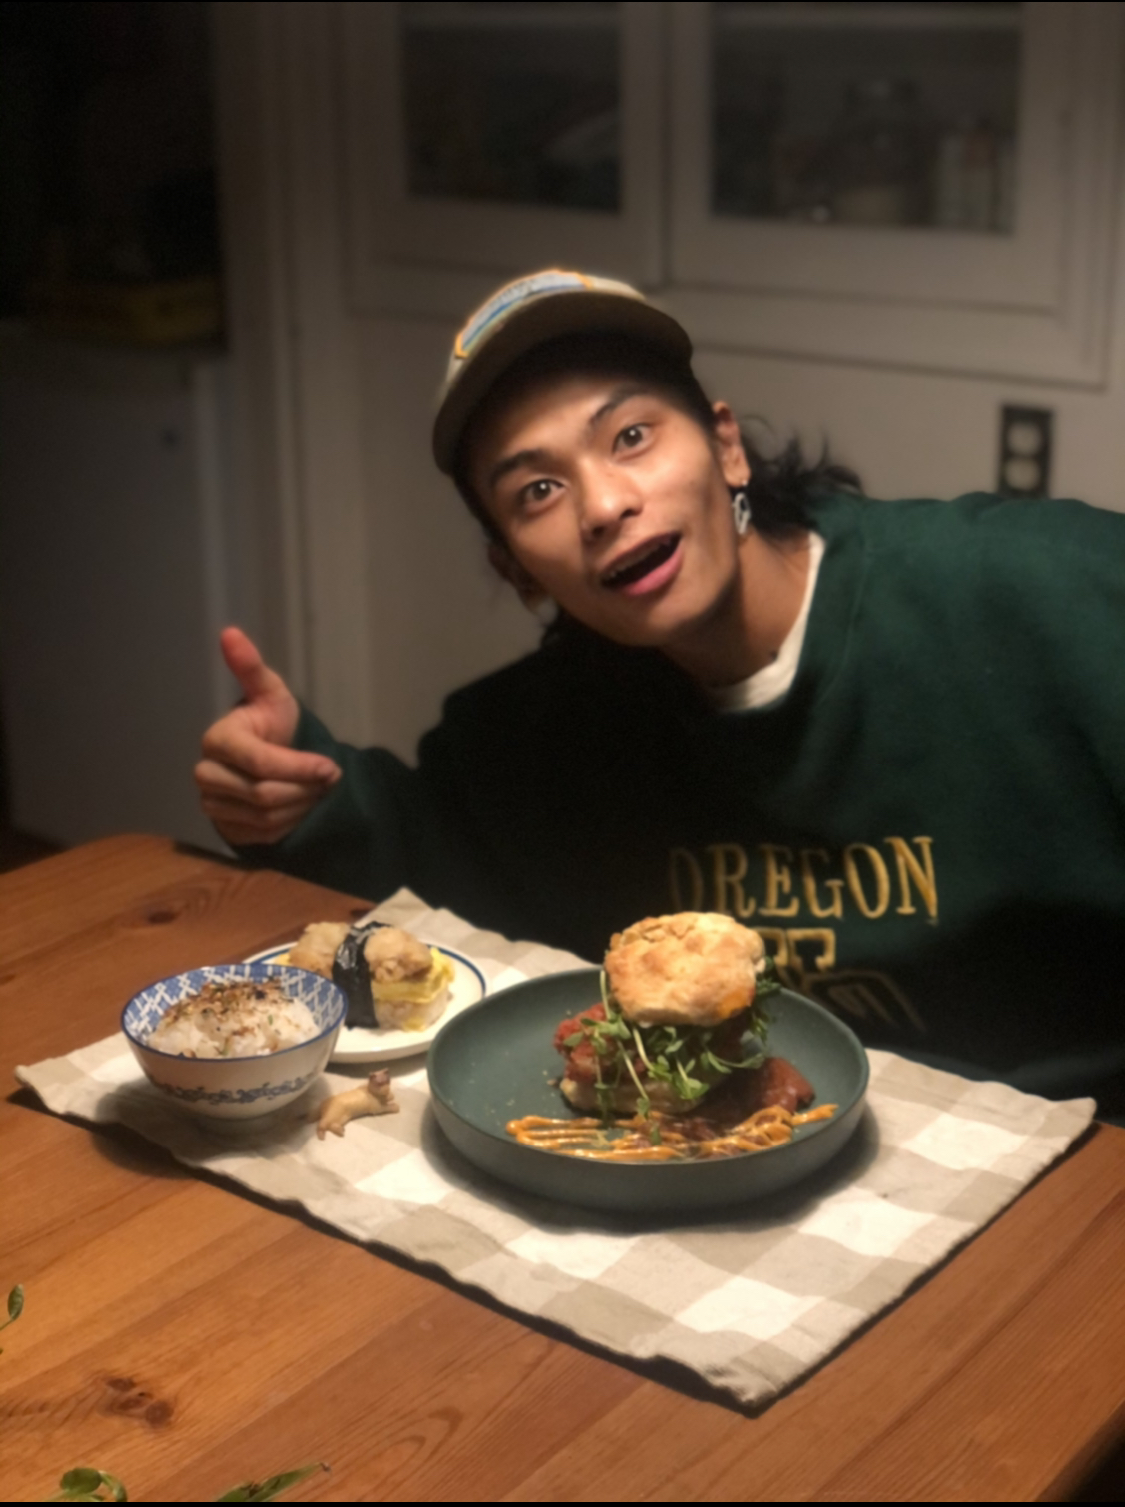 A young man in a hat and sweatshirt points and poses with a fried chicken sandwich